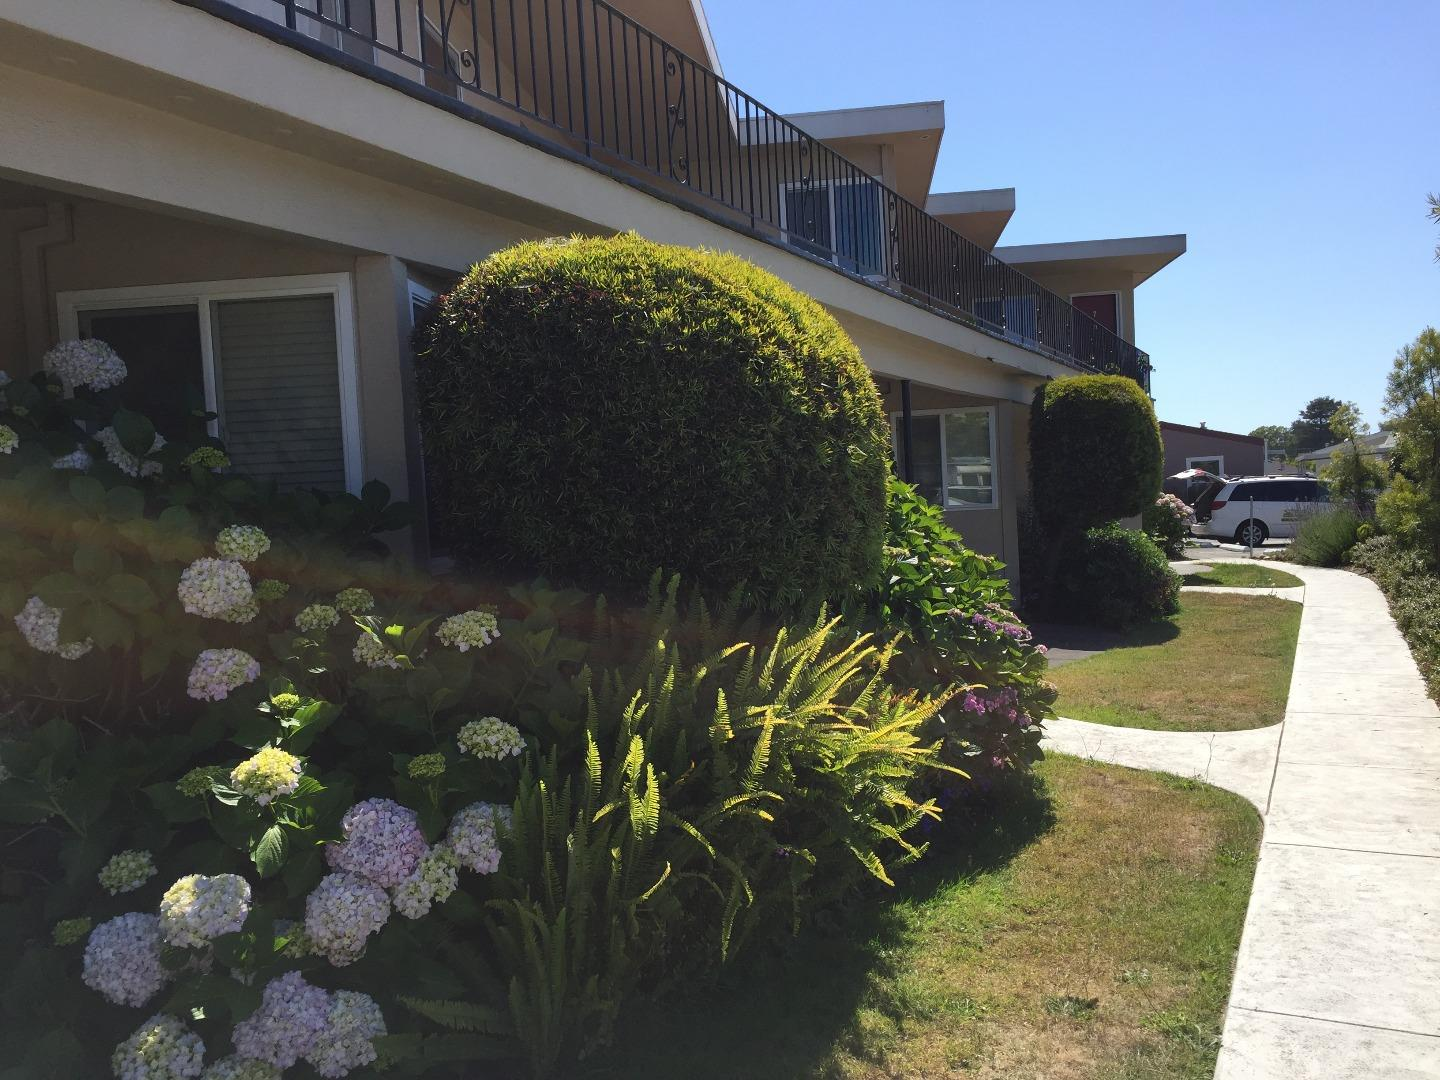 Additional photo for property listing at 911 38th Avenue 911 38th Avenue Santa Cruz, California 95062 United States